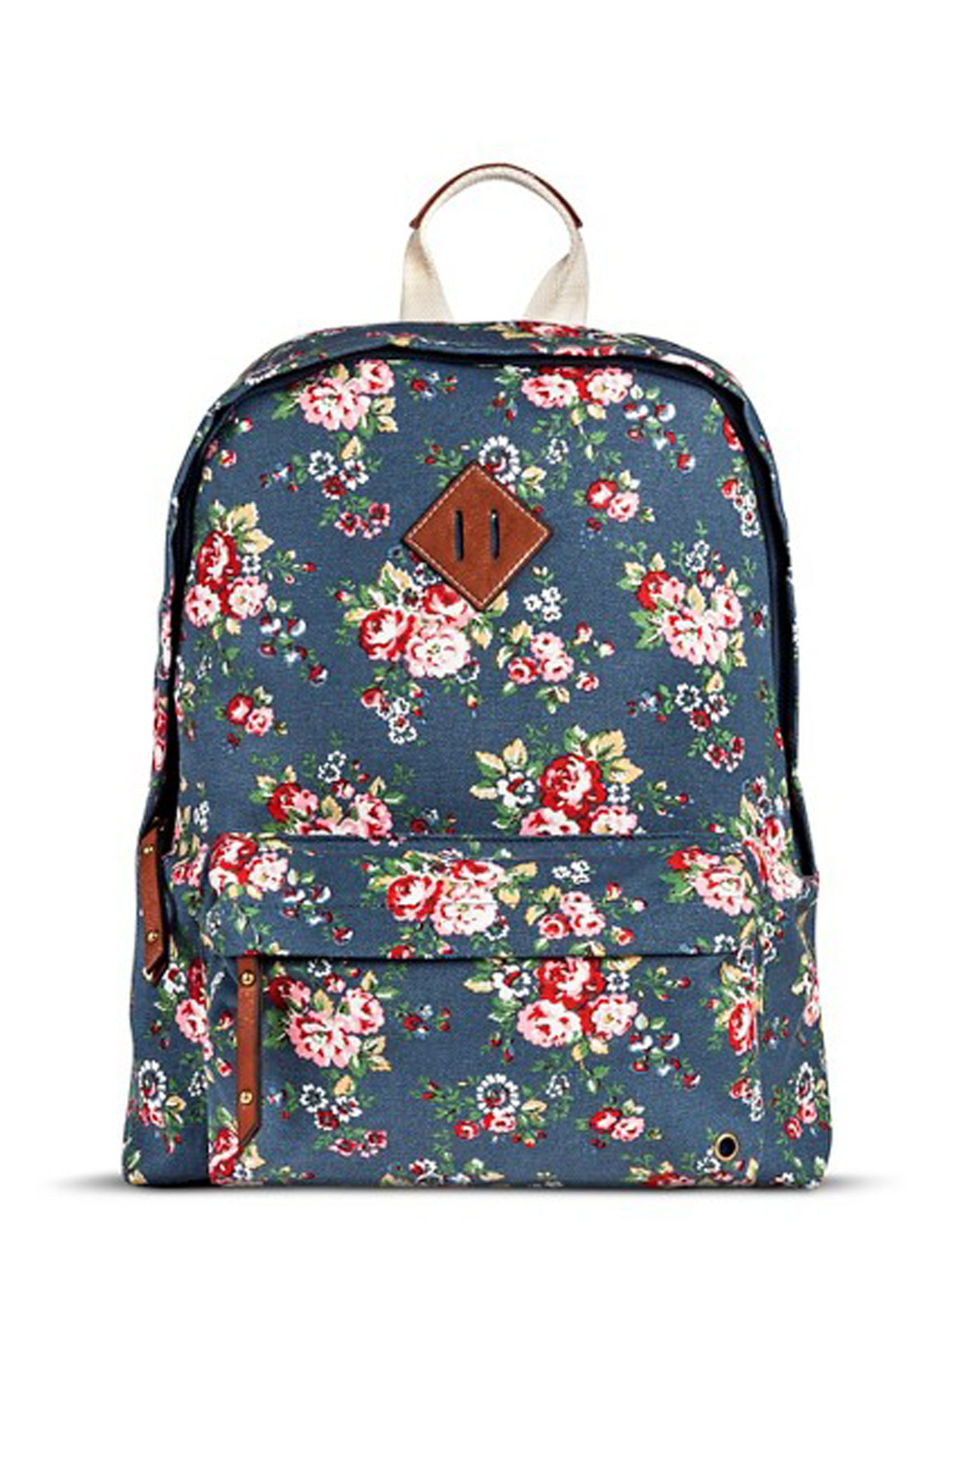 Backpacks For Teenage Girls elq9r9to